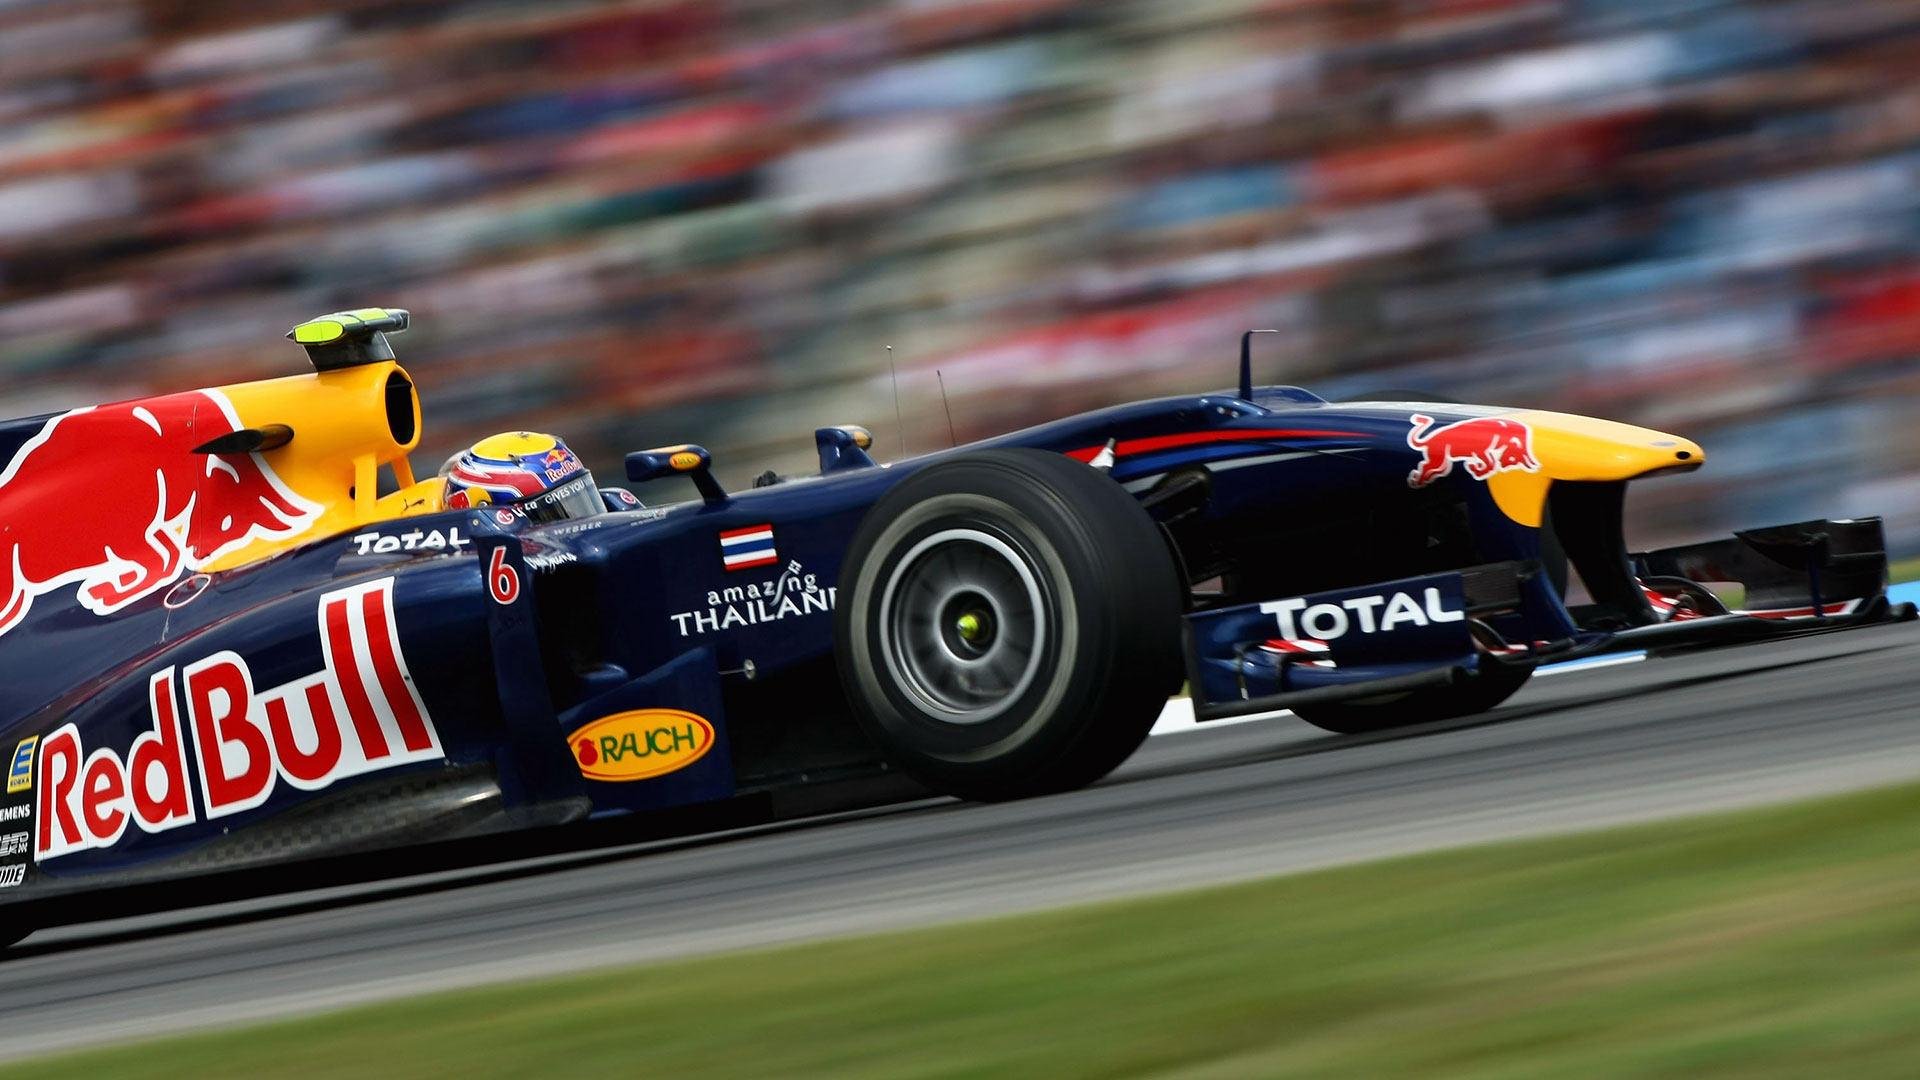 hd wallpapers 2010 formula 1 grand prix of germany | f1-fansite